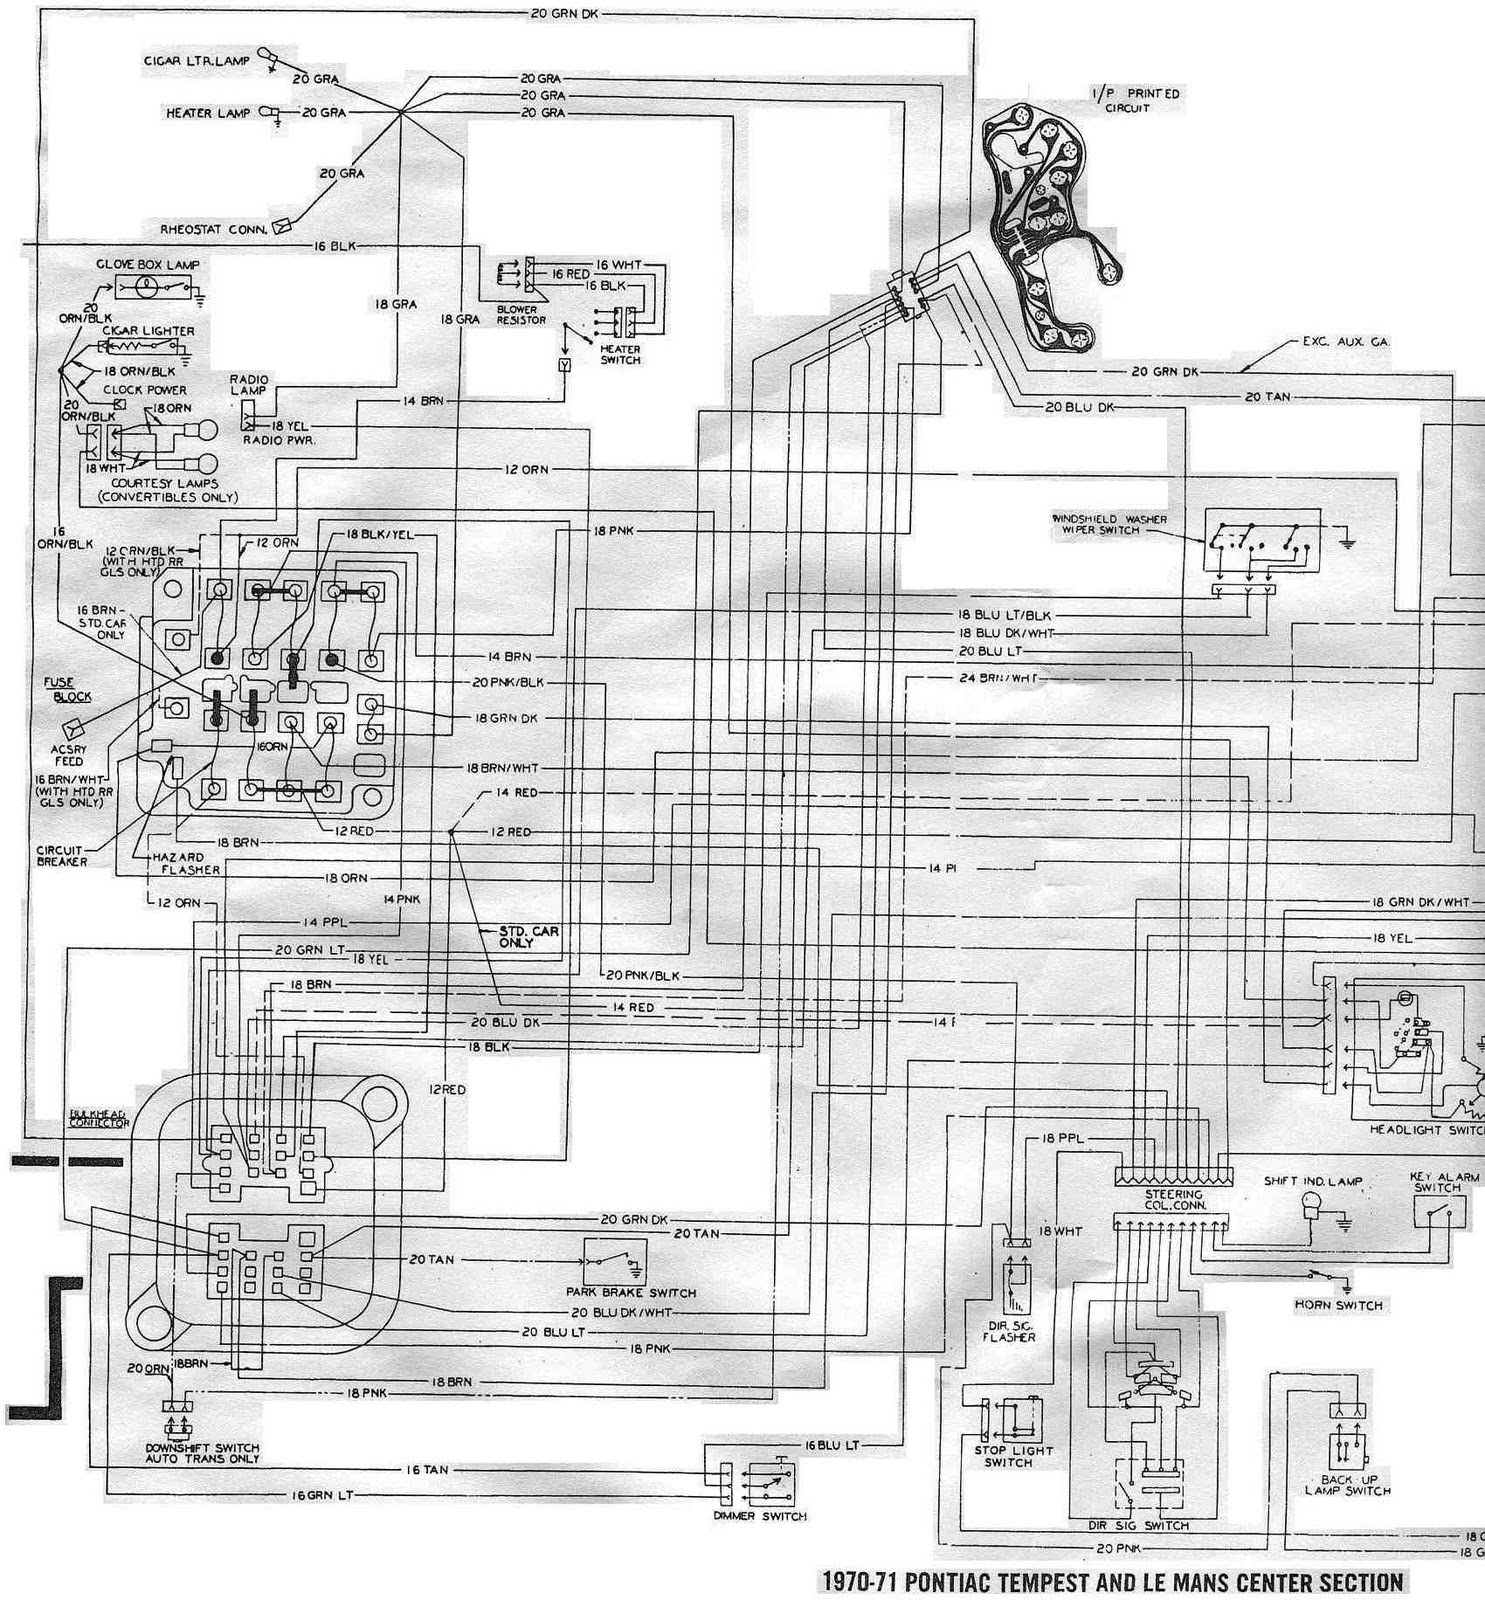 Pontiac+Tempest+and+LeMans+1970 1971+Center+Section+Schematic+Diagram pontiac tempest and lemans 1970 1971 center section schematic 1967 gto wiring diagram at crackthecode.co